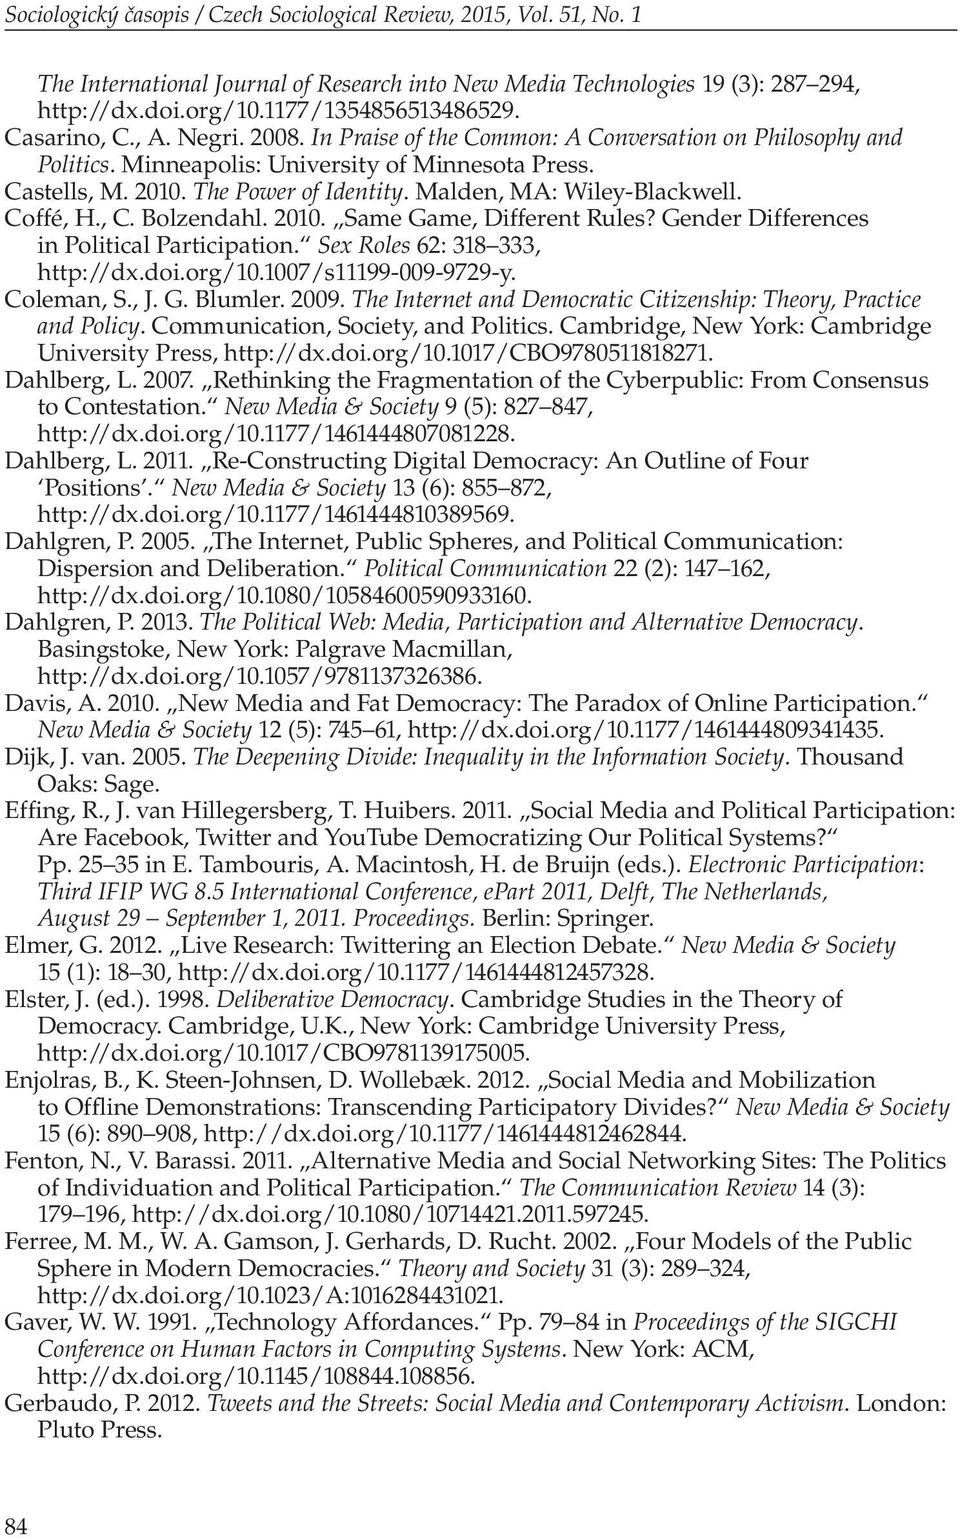 Malden, MA: Wiley-Blackwell. Coffé, H., C. Bolzendahl. 2010. Same Game, Different Rules? Gender Differences in Political Participation. Sex Roles 62: 318 333, http://dx.doi.org/10.